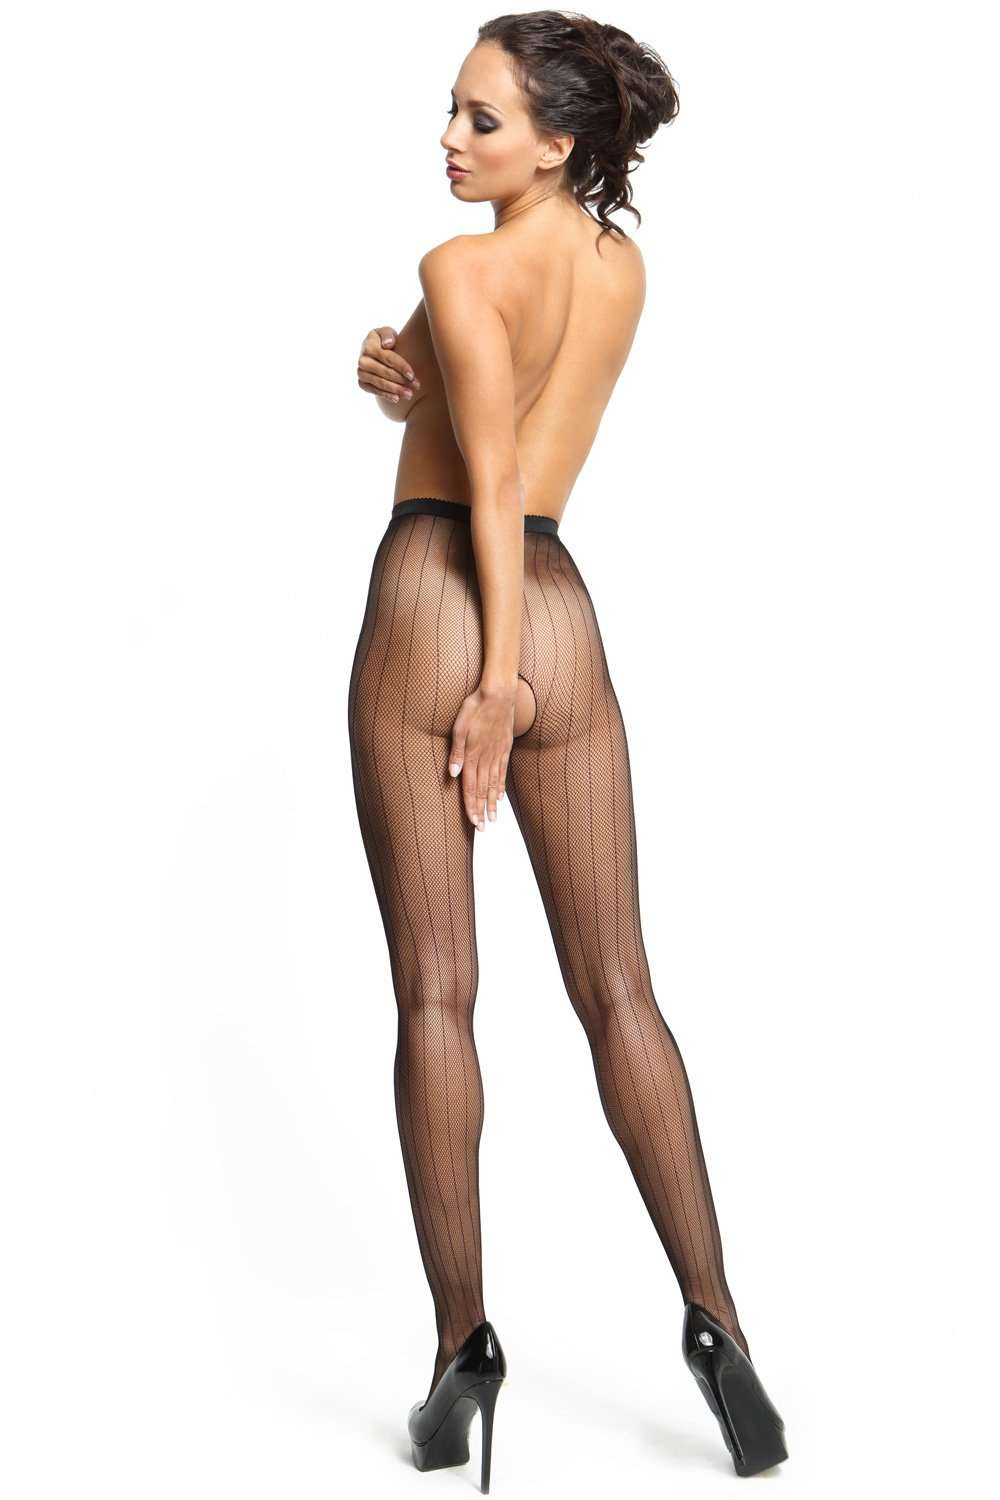 missO Crotchless Pantyhose - Open Crotch Tights - Naughty Knickers